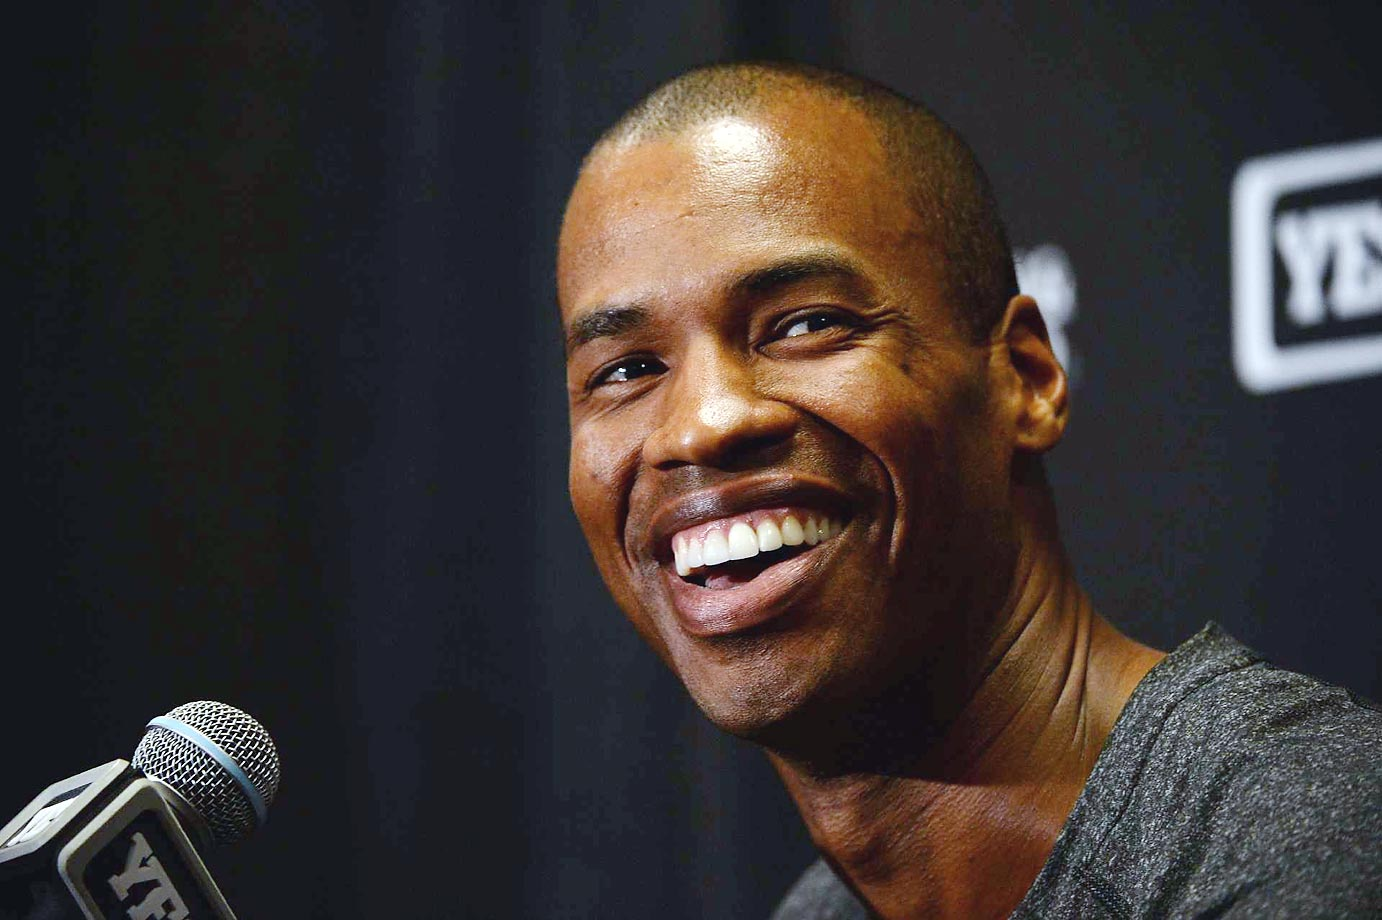 jason collins Jason collins official sherdog mixed martial arts stats, photos, videos, breaking news, and more for the fighter from.